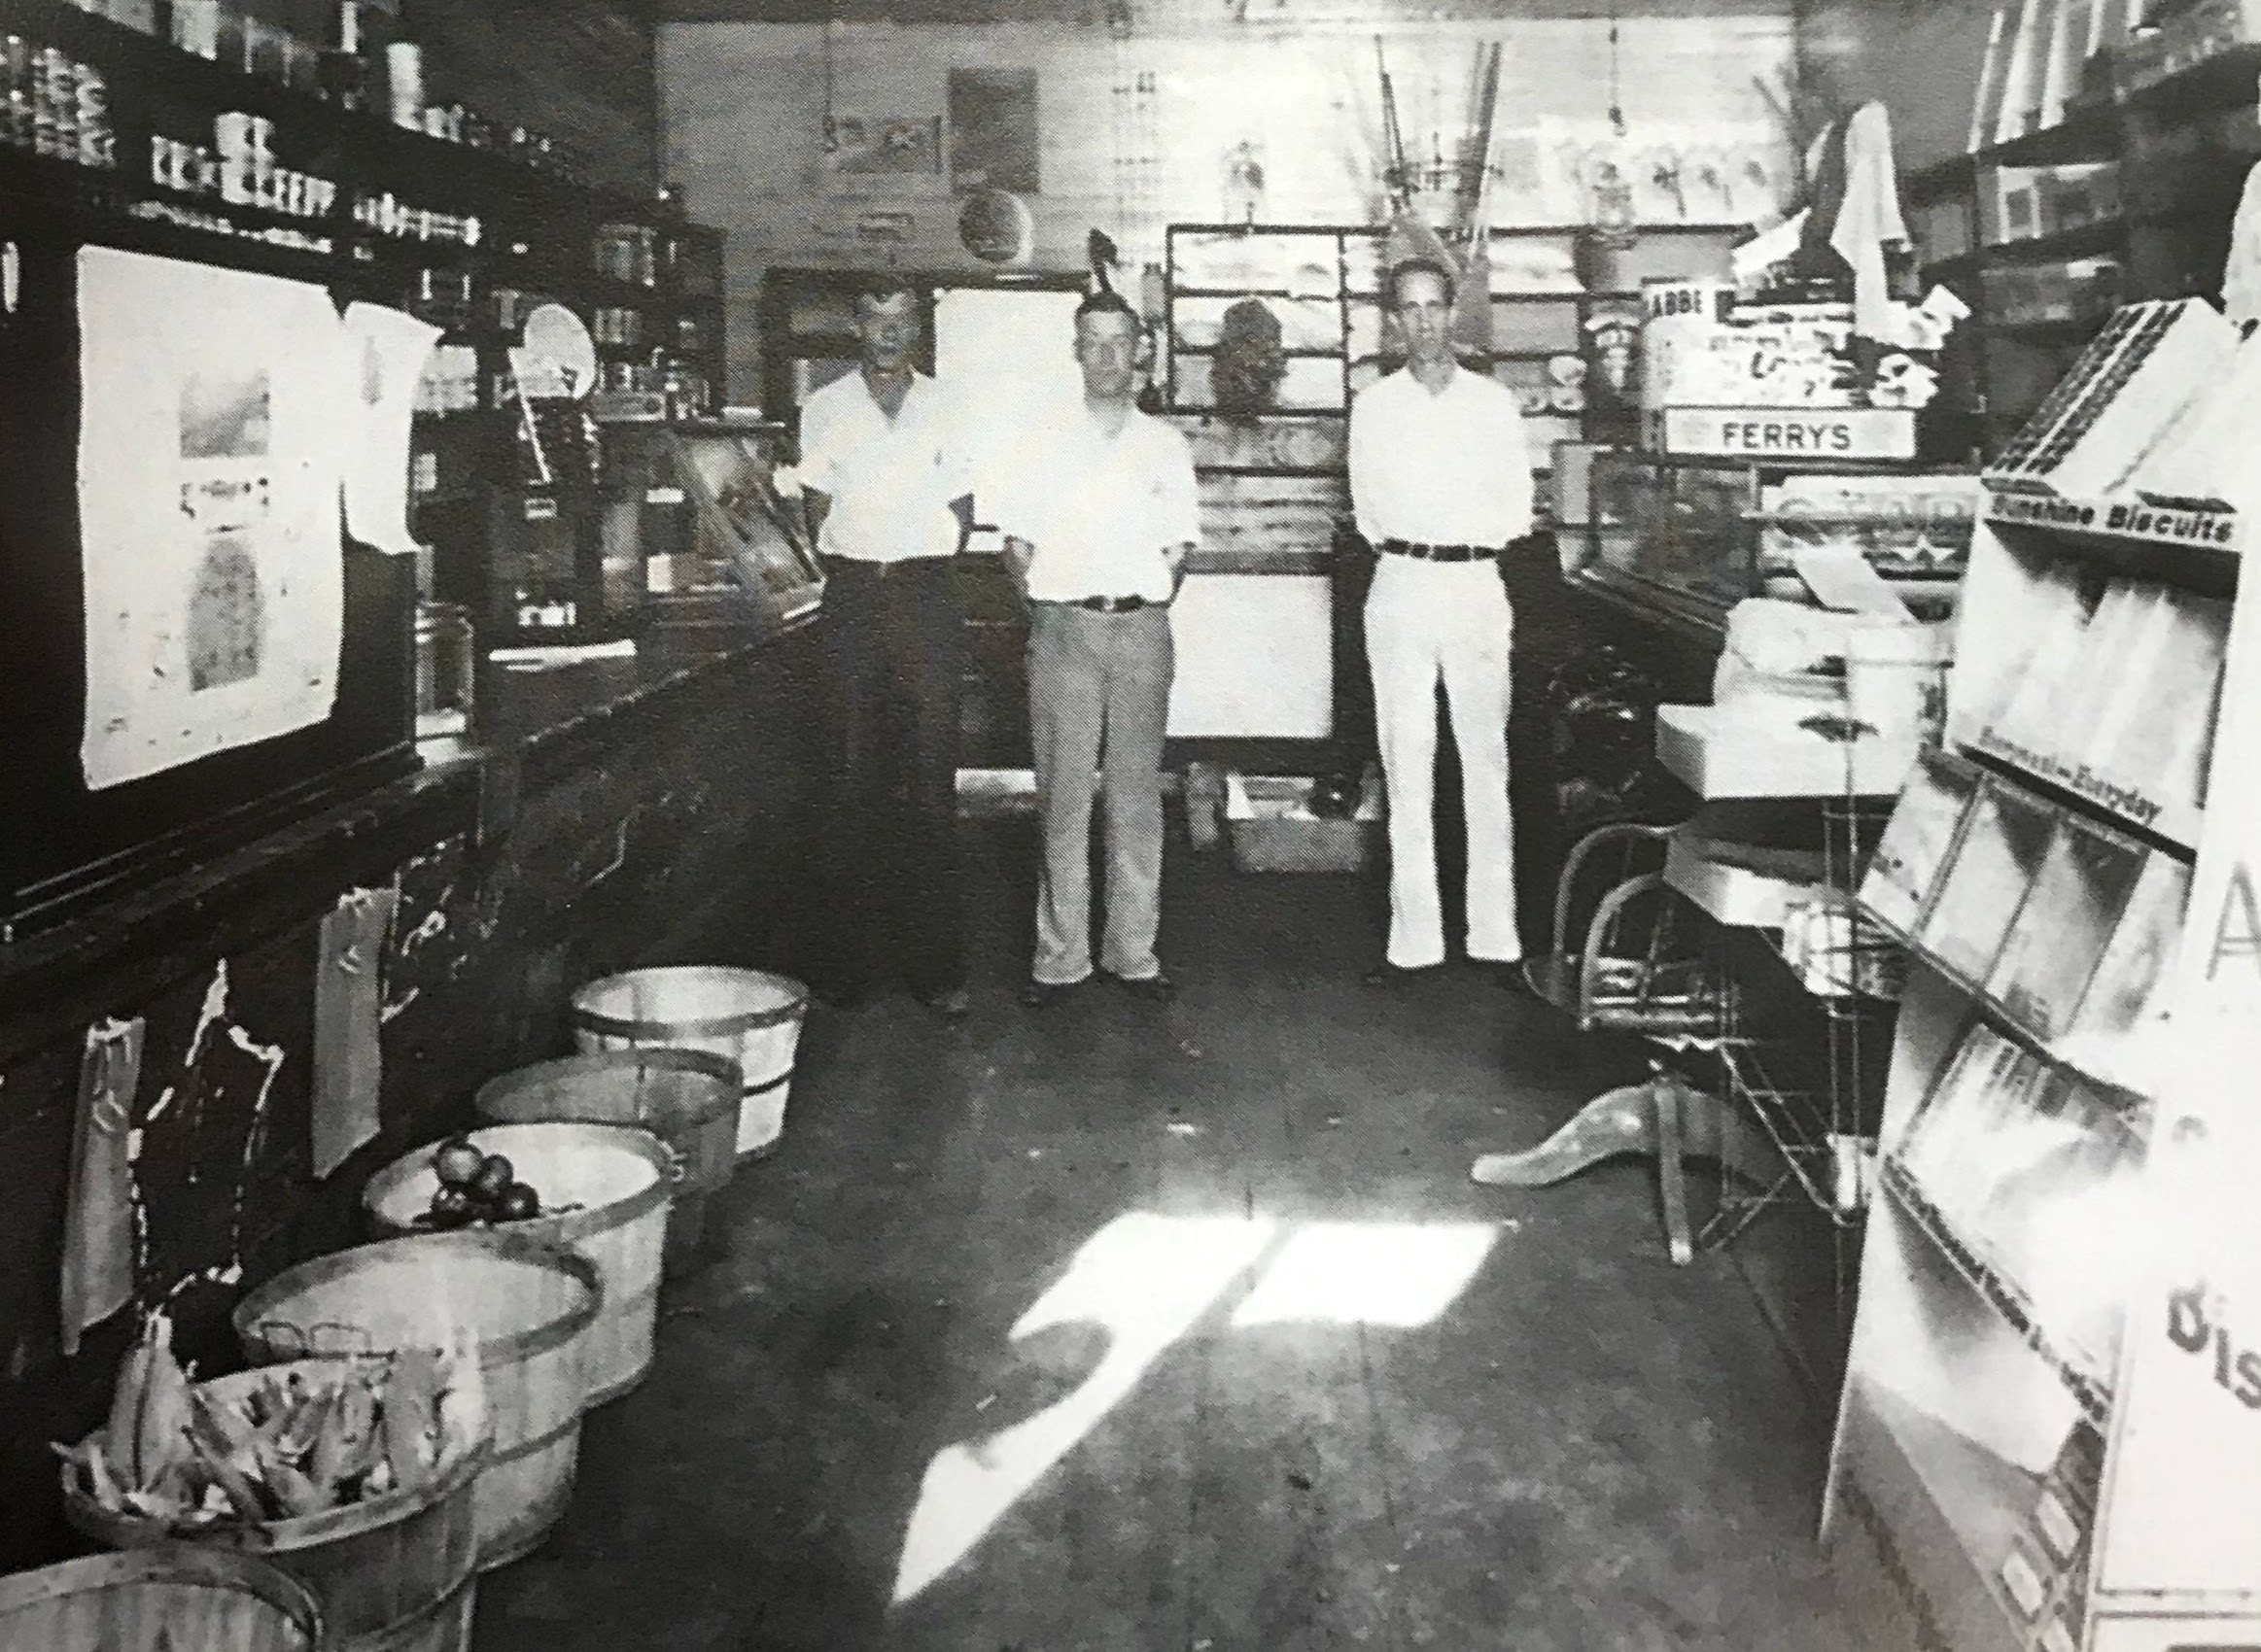 Inside of original Nicely's store. Left to right are Thad Cromptom, clerk and delivery man; A. C. Nicely, owner; and  Eugene Wells, a customer